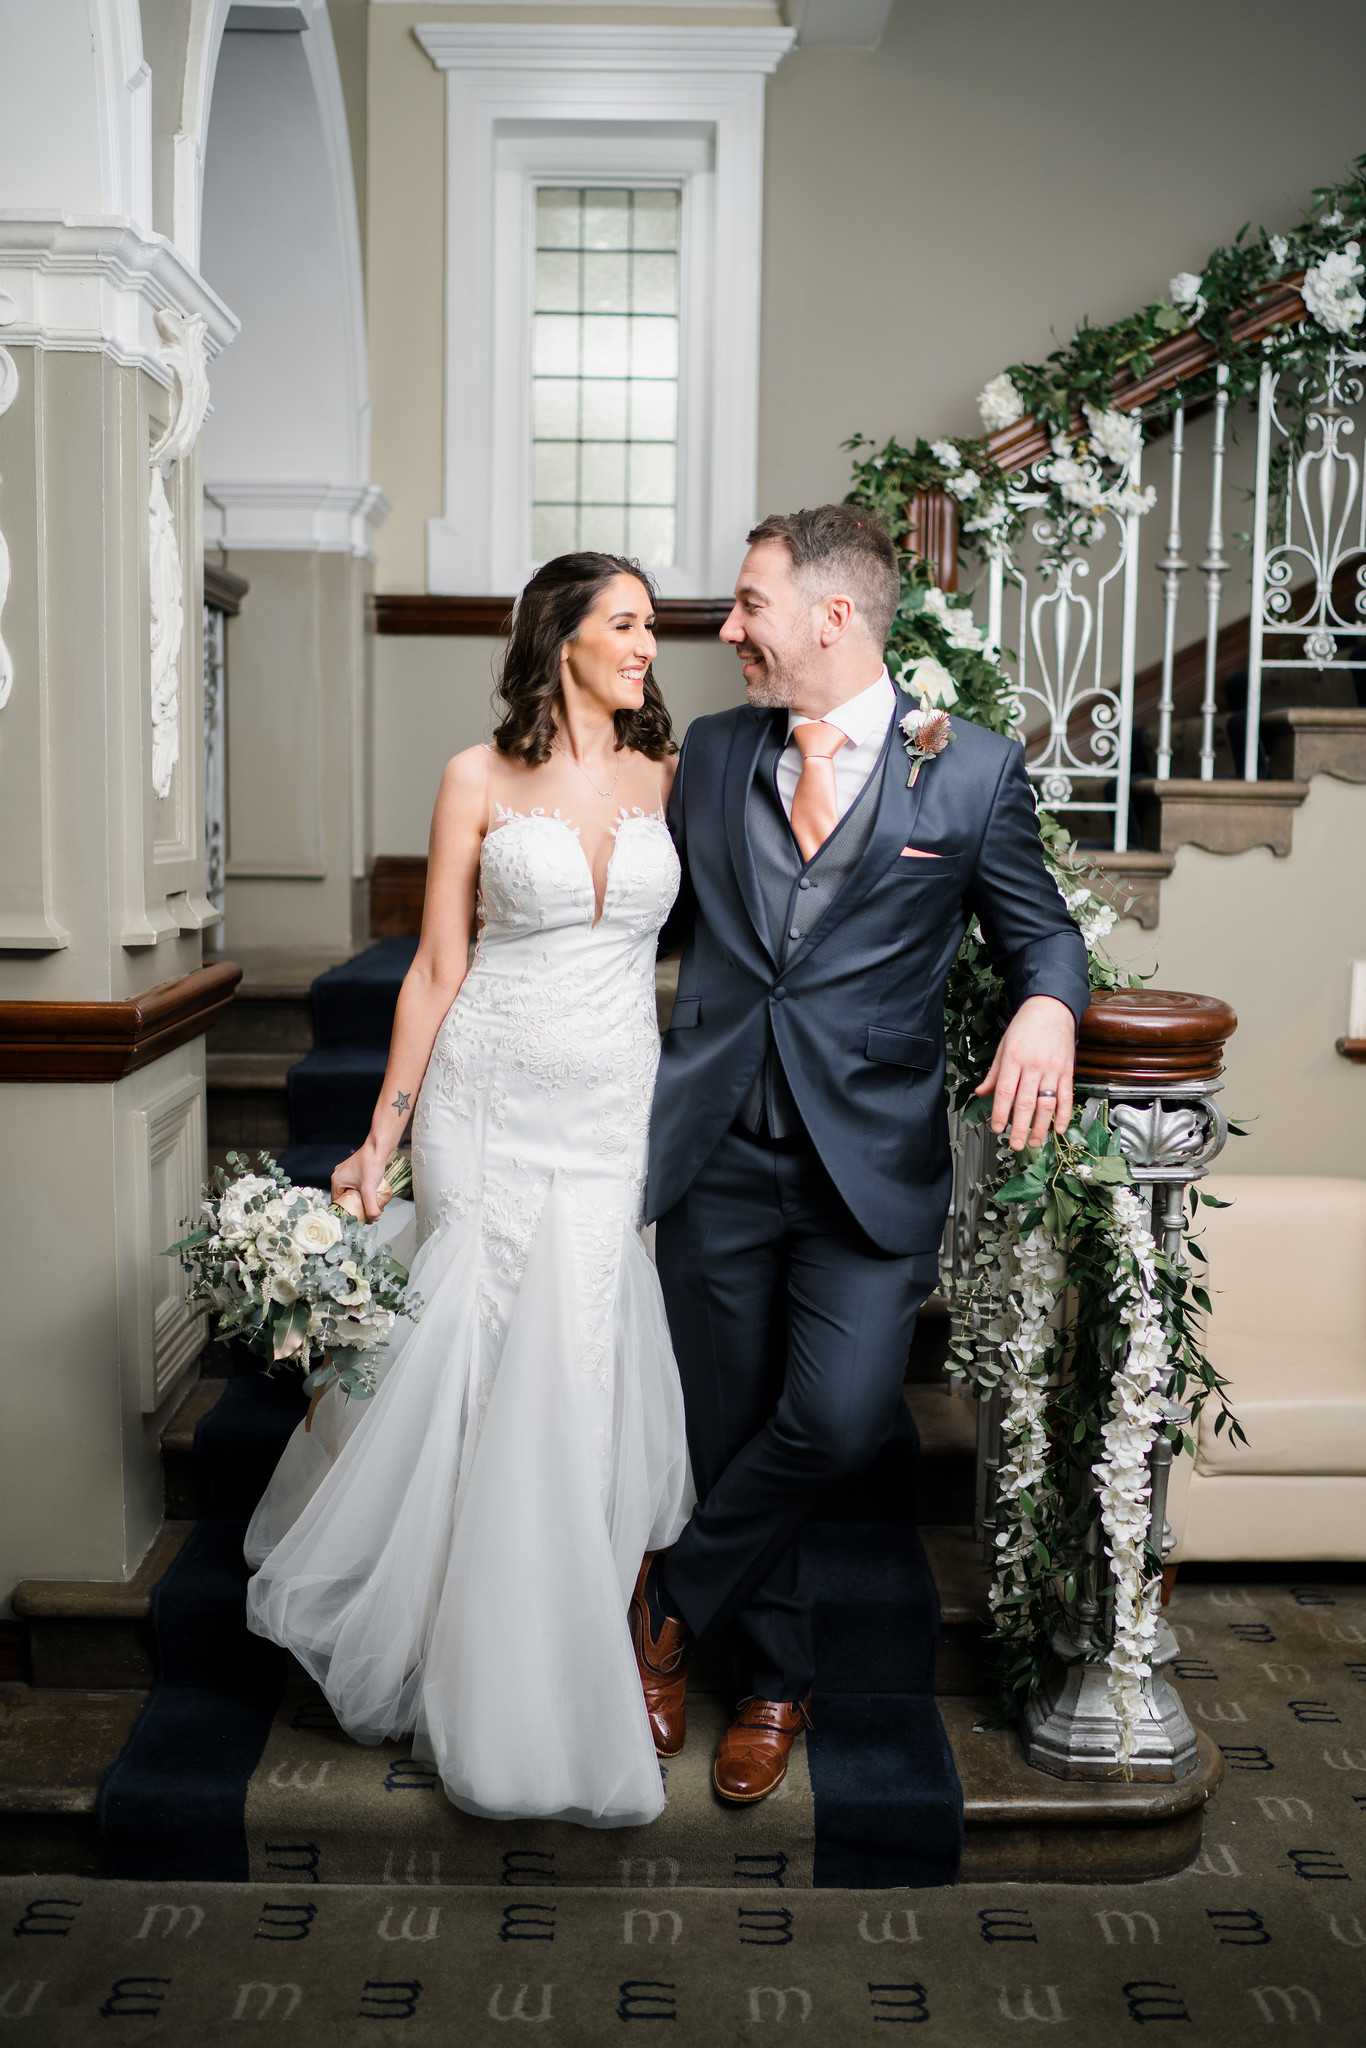 Bride and groom look at each other and smile as they stand at the bottom of the stairs in the venue